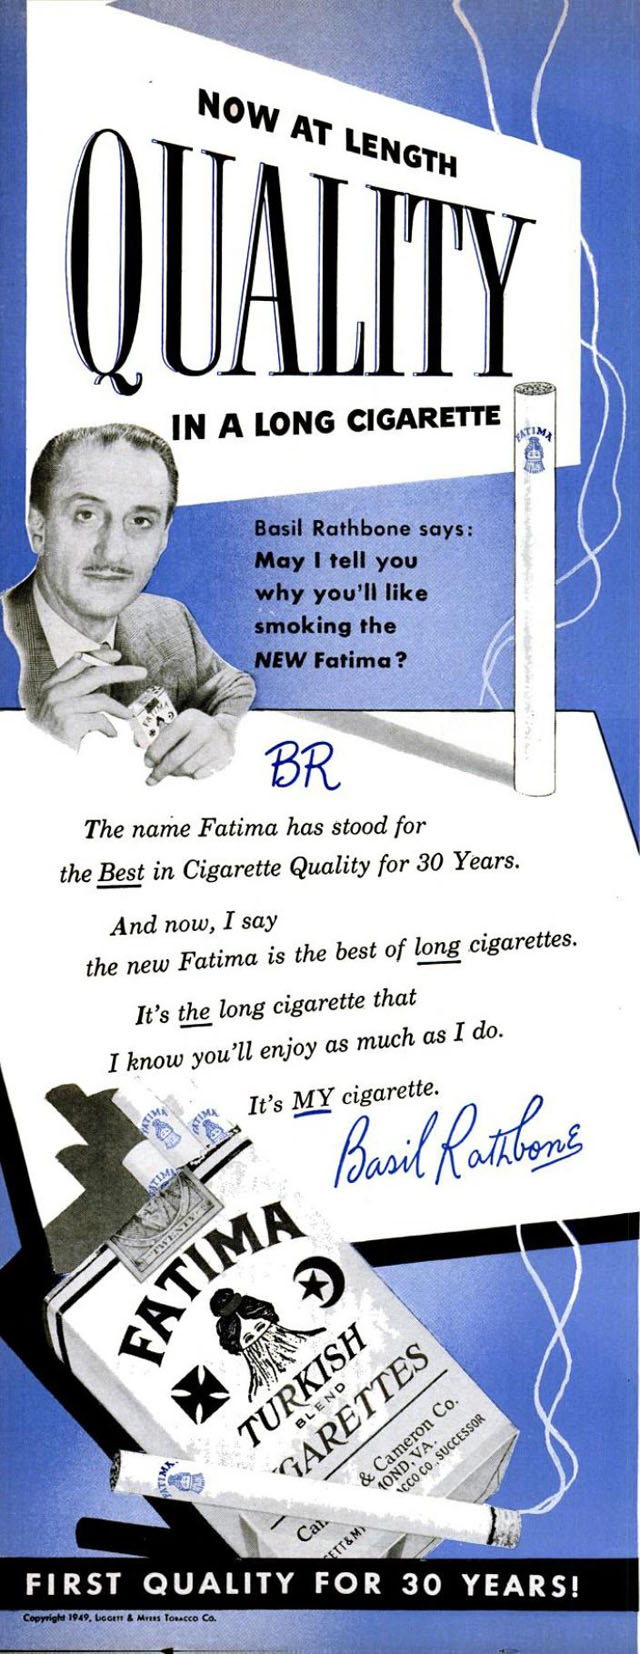 Celebrity Smoking Ad - Basil Rathbone for Fatima, 1949